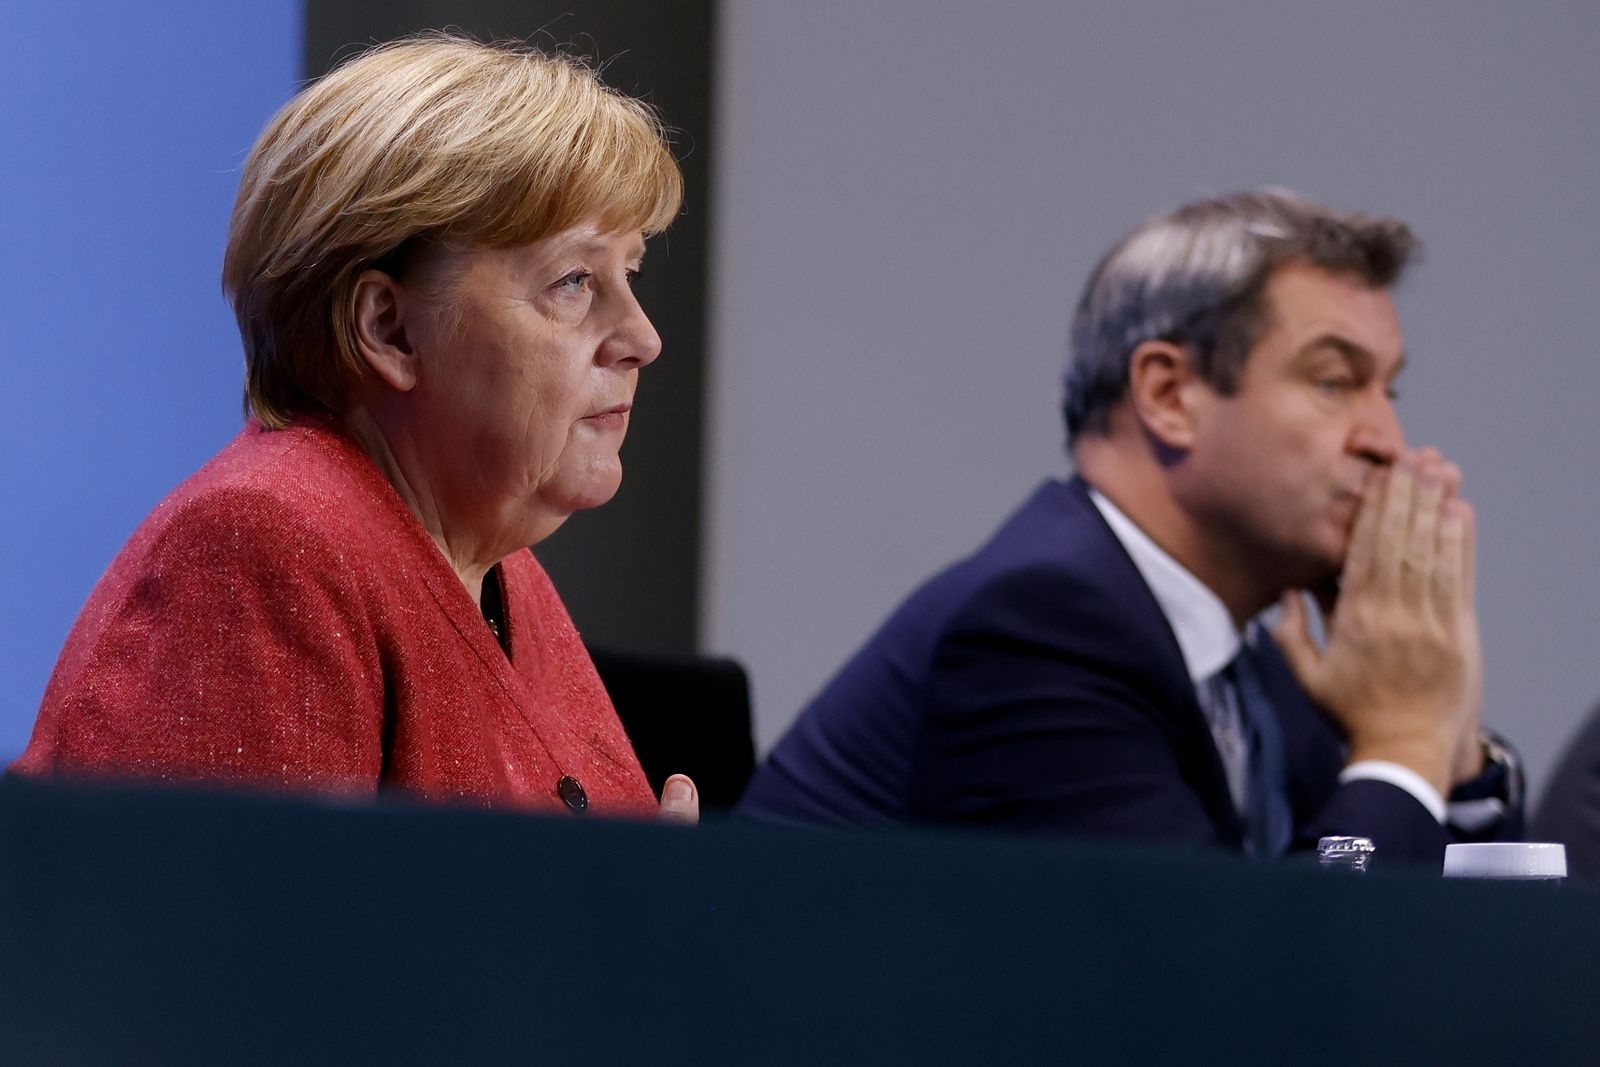 German Chancellor Angela Merkel attends a news conference on COVID-19 in Berlin